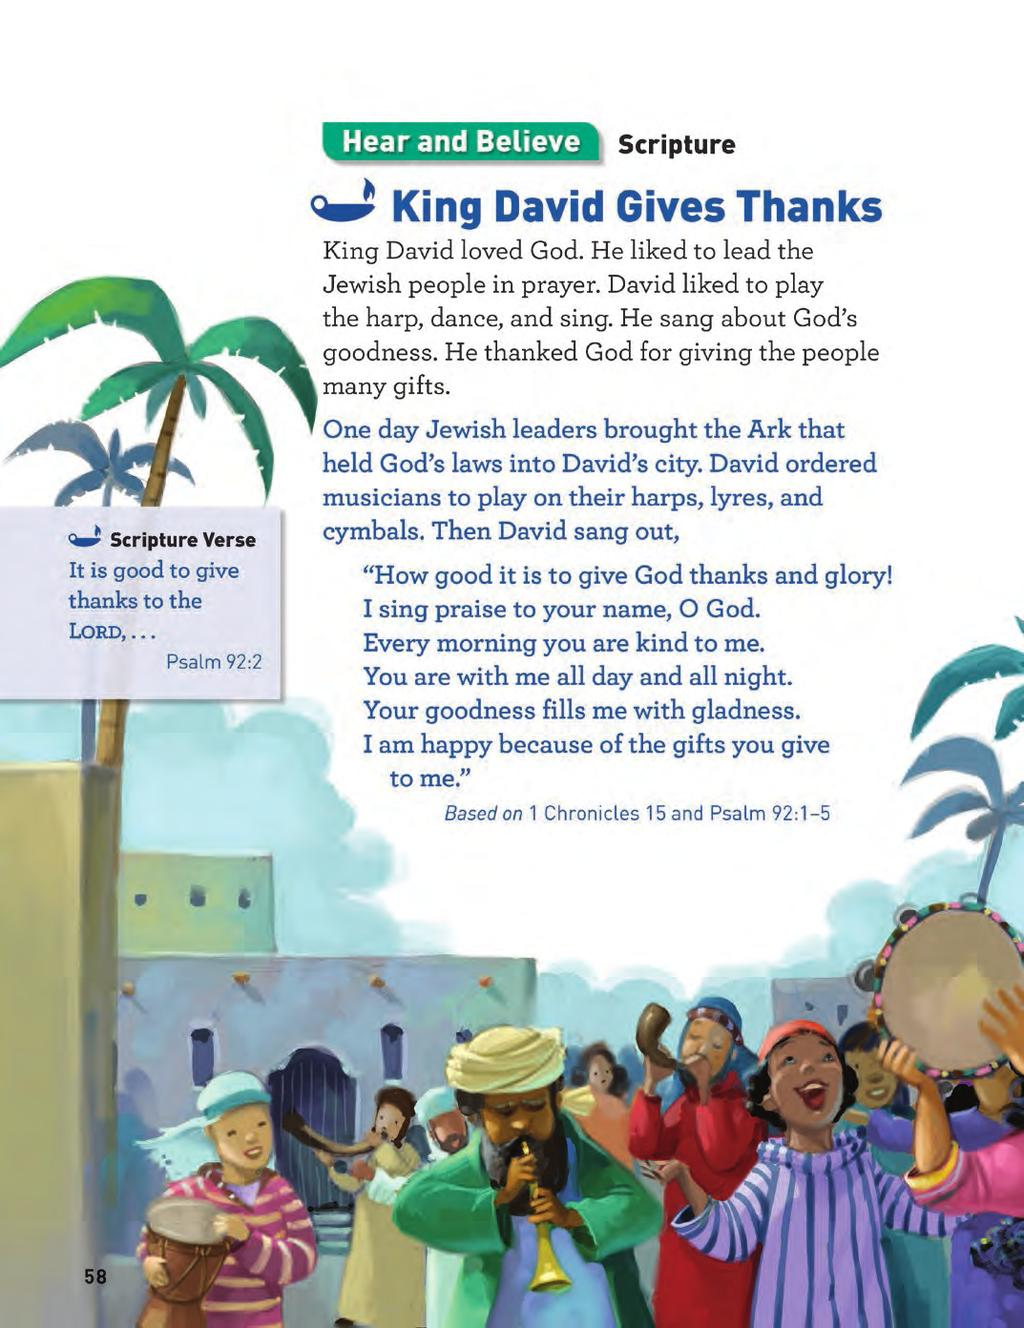 Grade 2 Hear and Believe Page DOCTRINE PAGES The next two pages consist of doctrine, Scripture, liturgical texts, saints biographies, and inspirational stories.